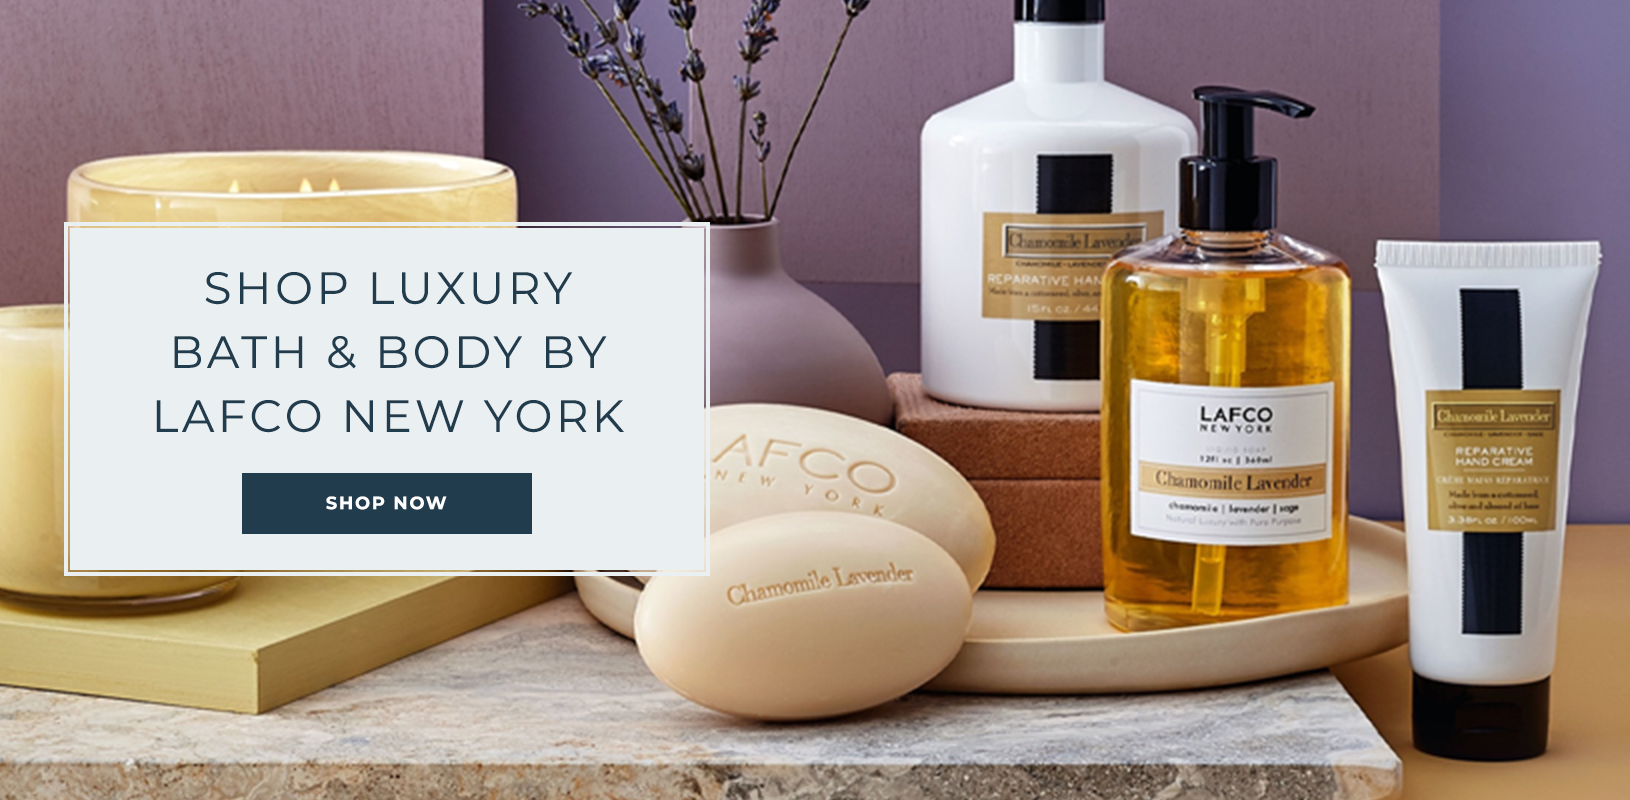 Shop Luxury Bath and Body by Lafco New York